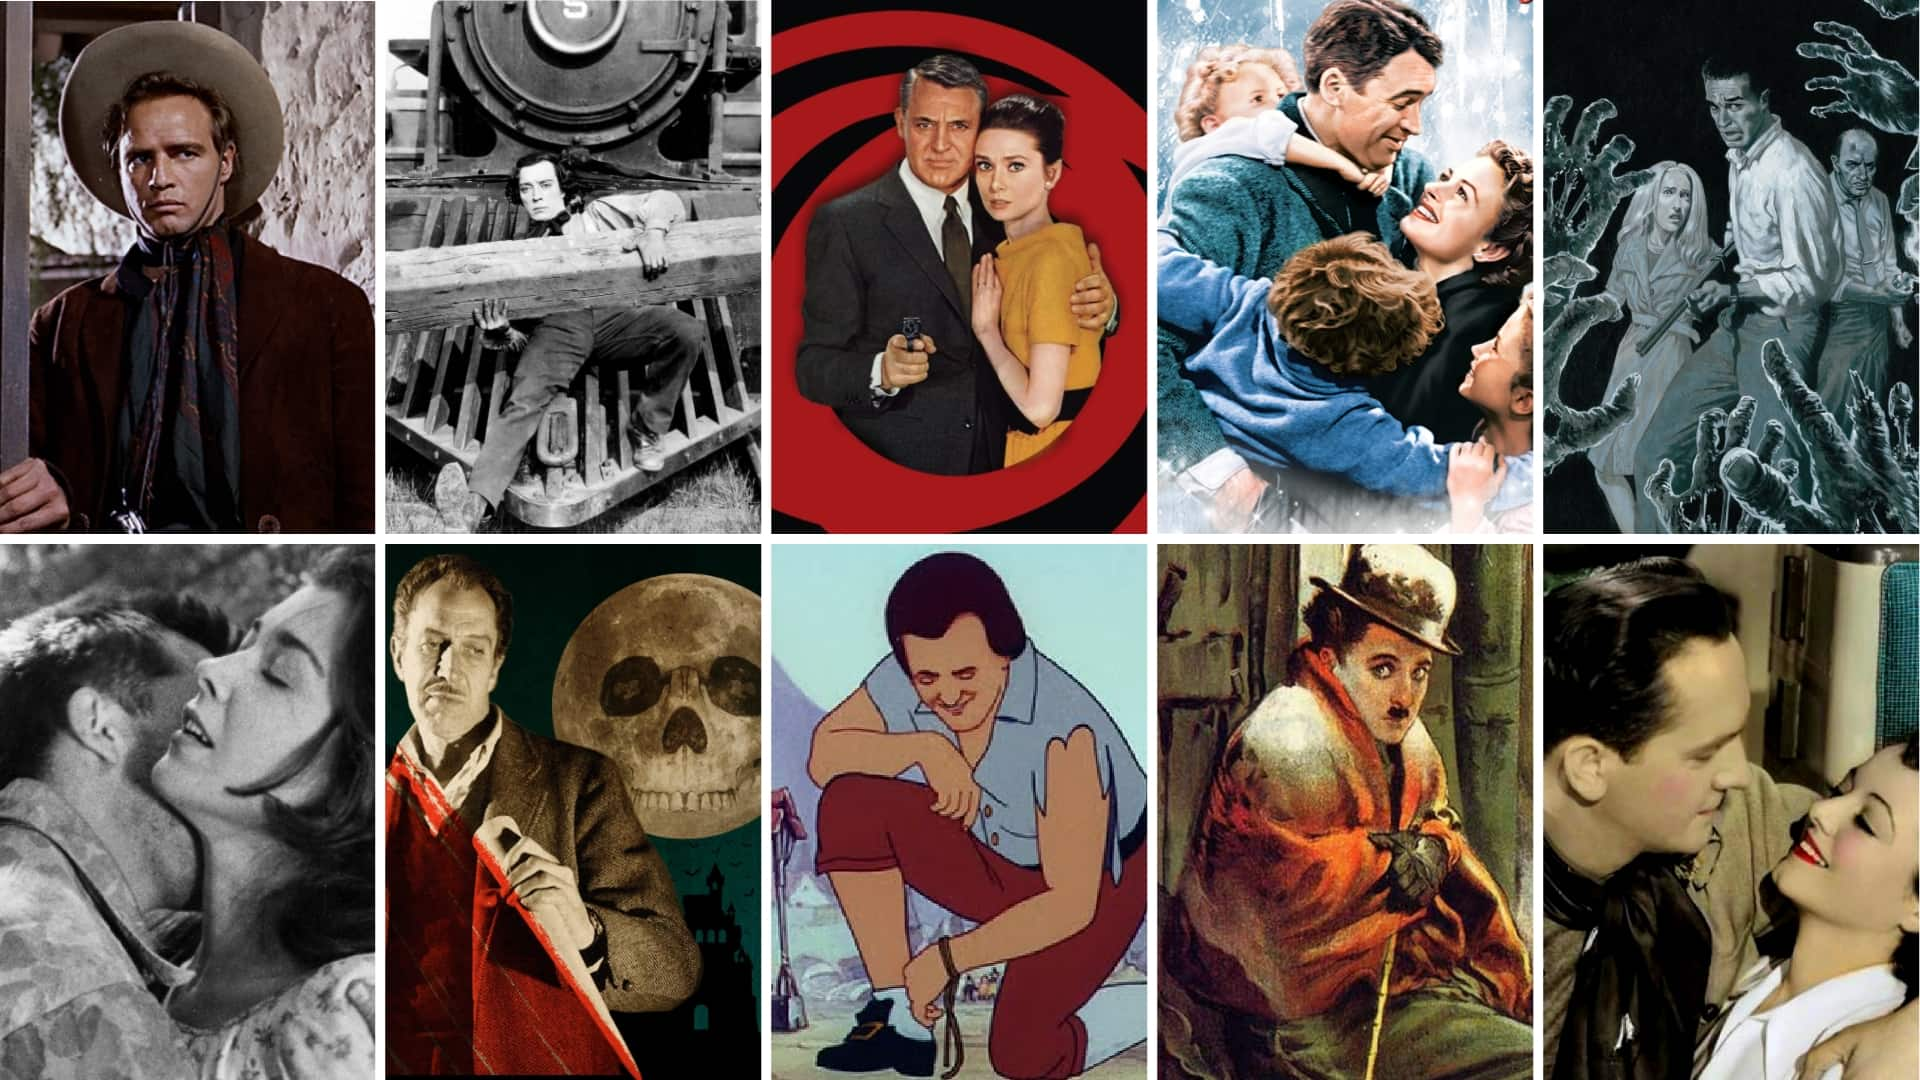 Best Public Domain Movies Online You Can Watch Right Now - Featured